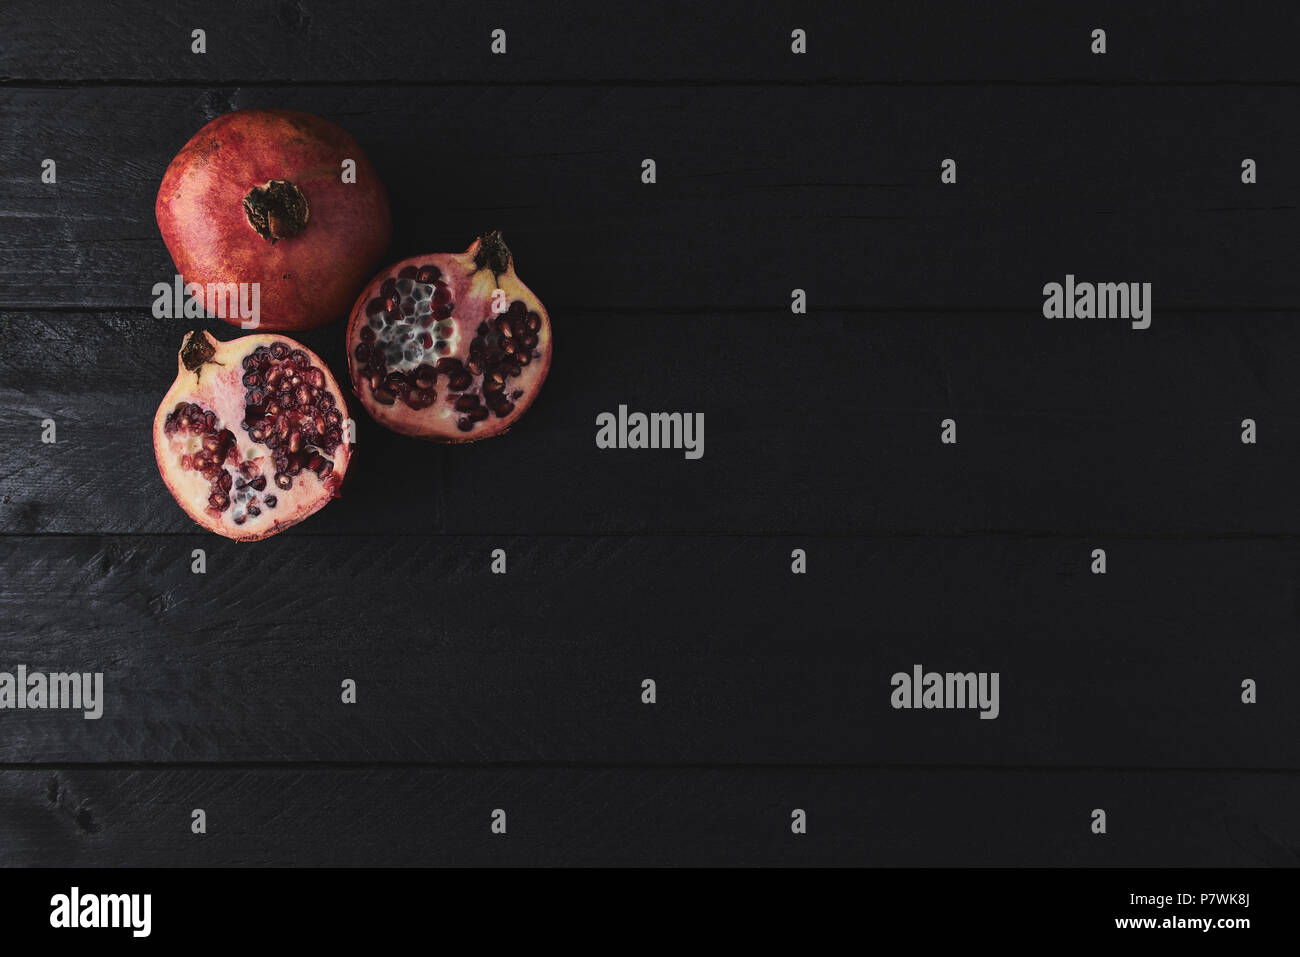 Flat lay of ripe pomegranate fruit on black wooden vintage background. Top view with copy space. Stock Photo